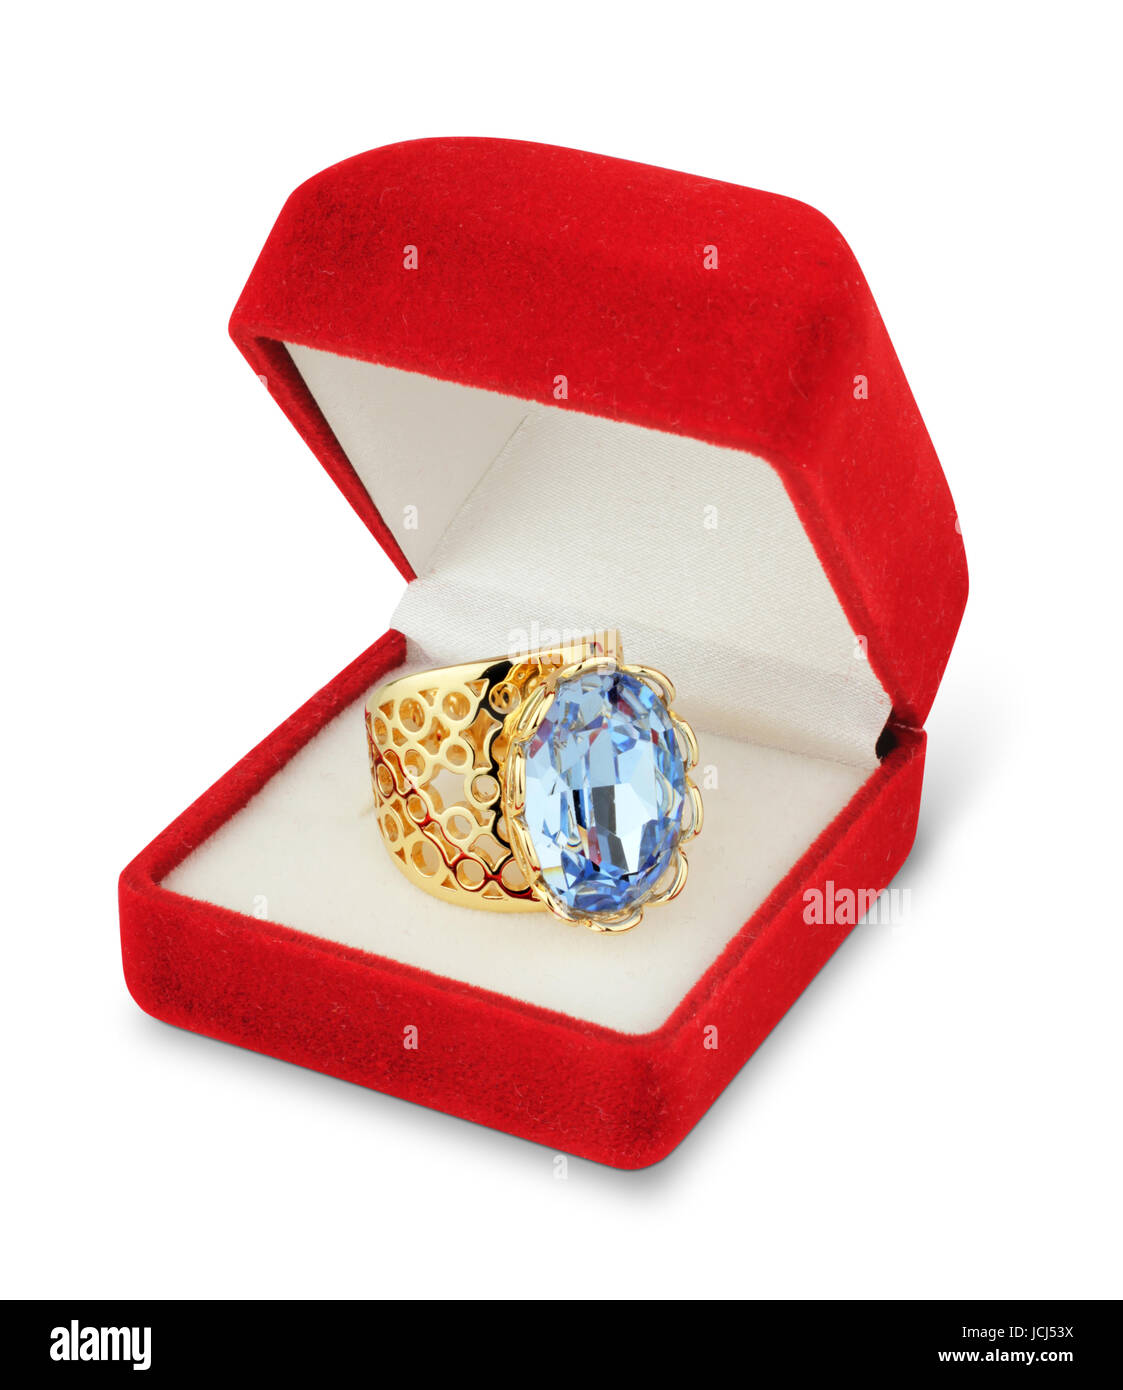 jewellry box with ring isolated on white - Stock Image